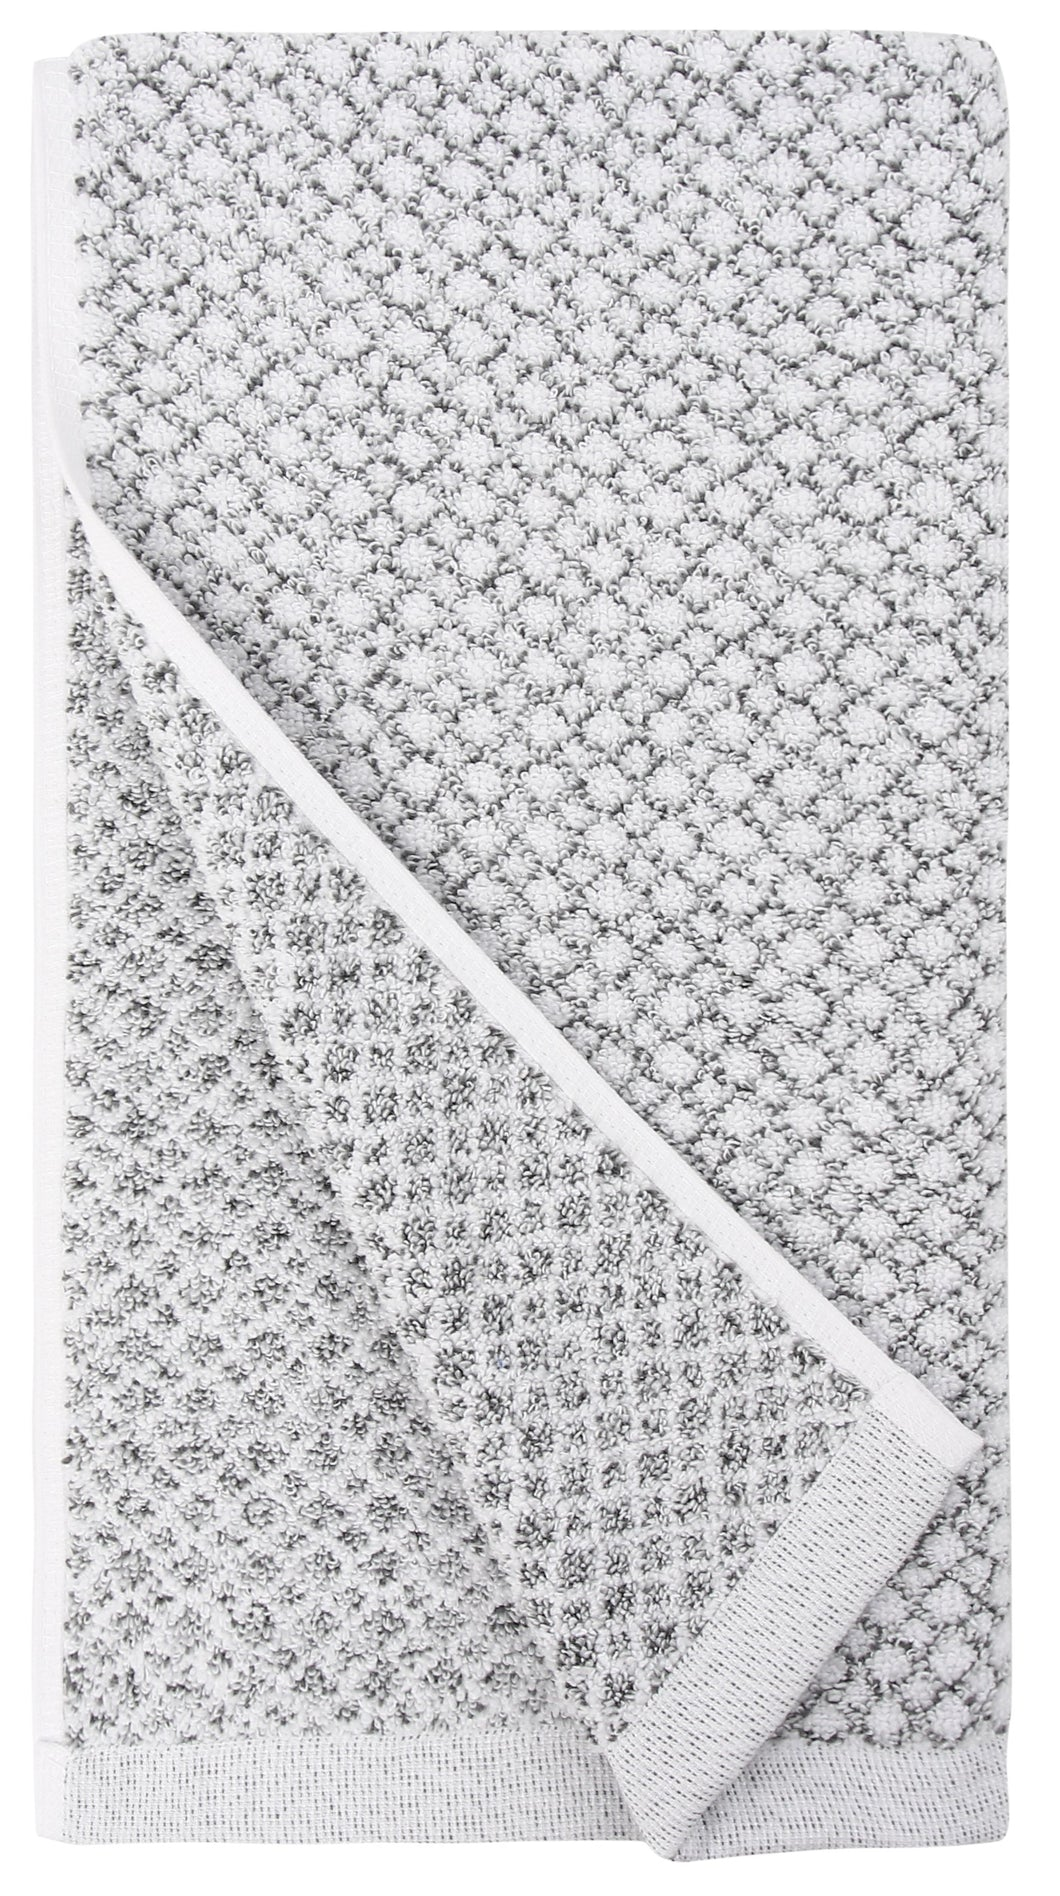 everplush hand towel grey white marble quick dry towel